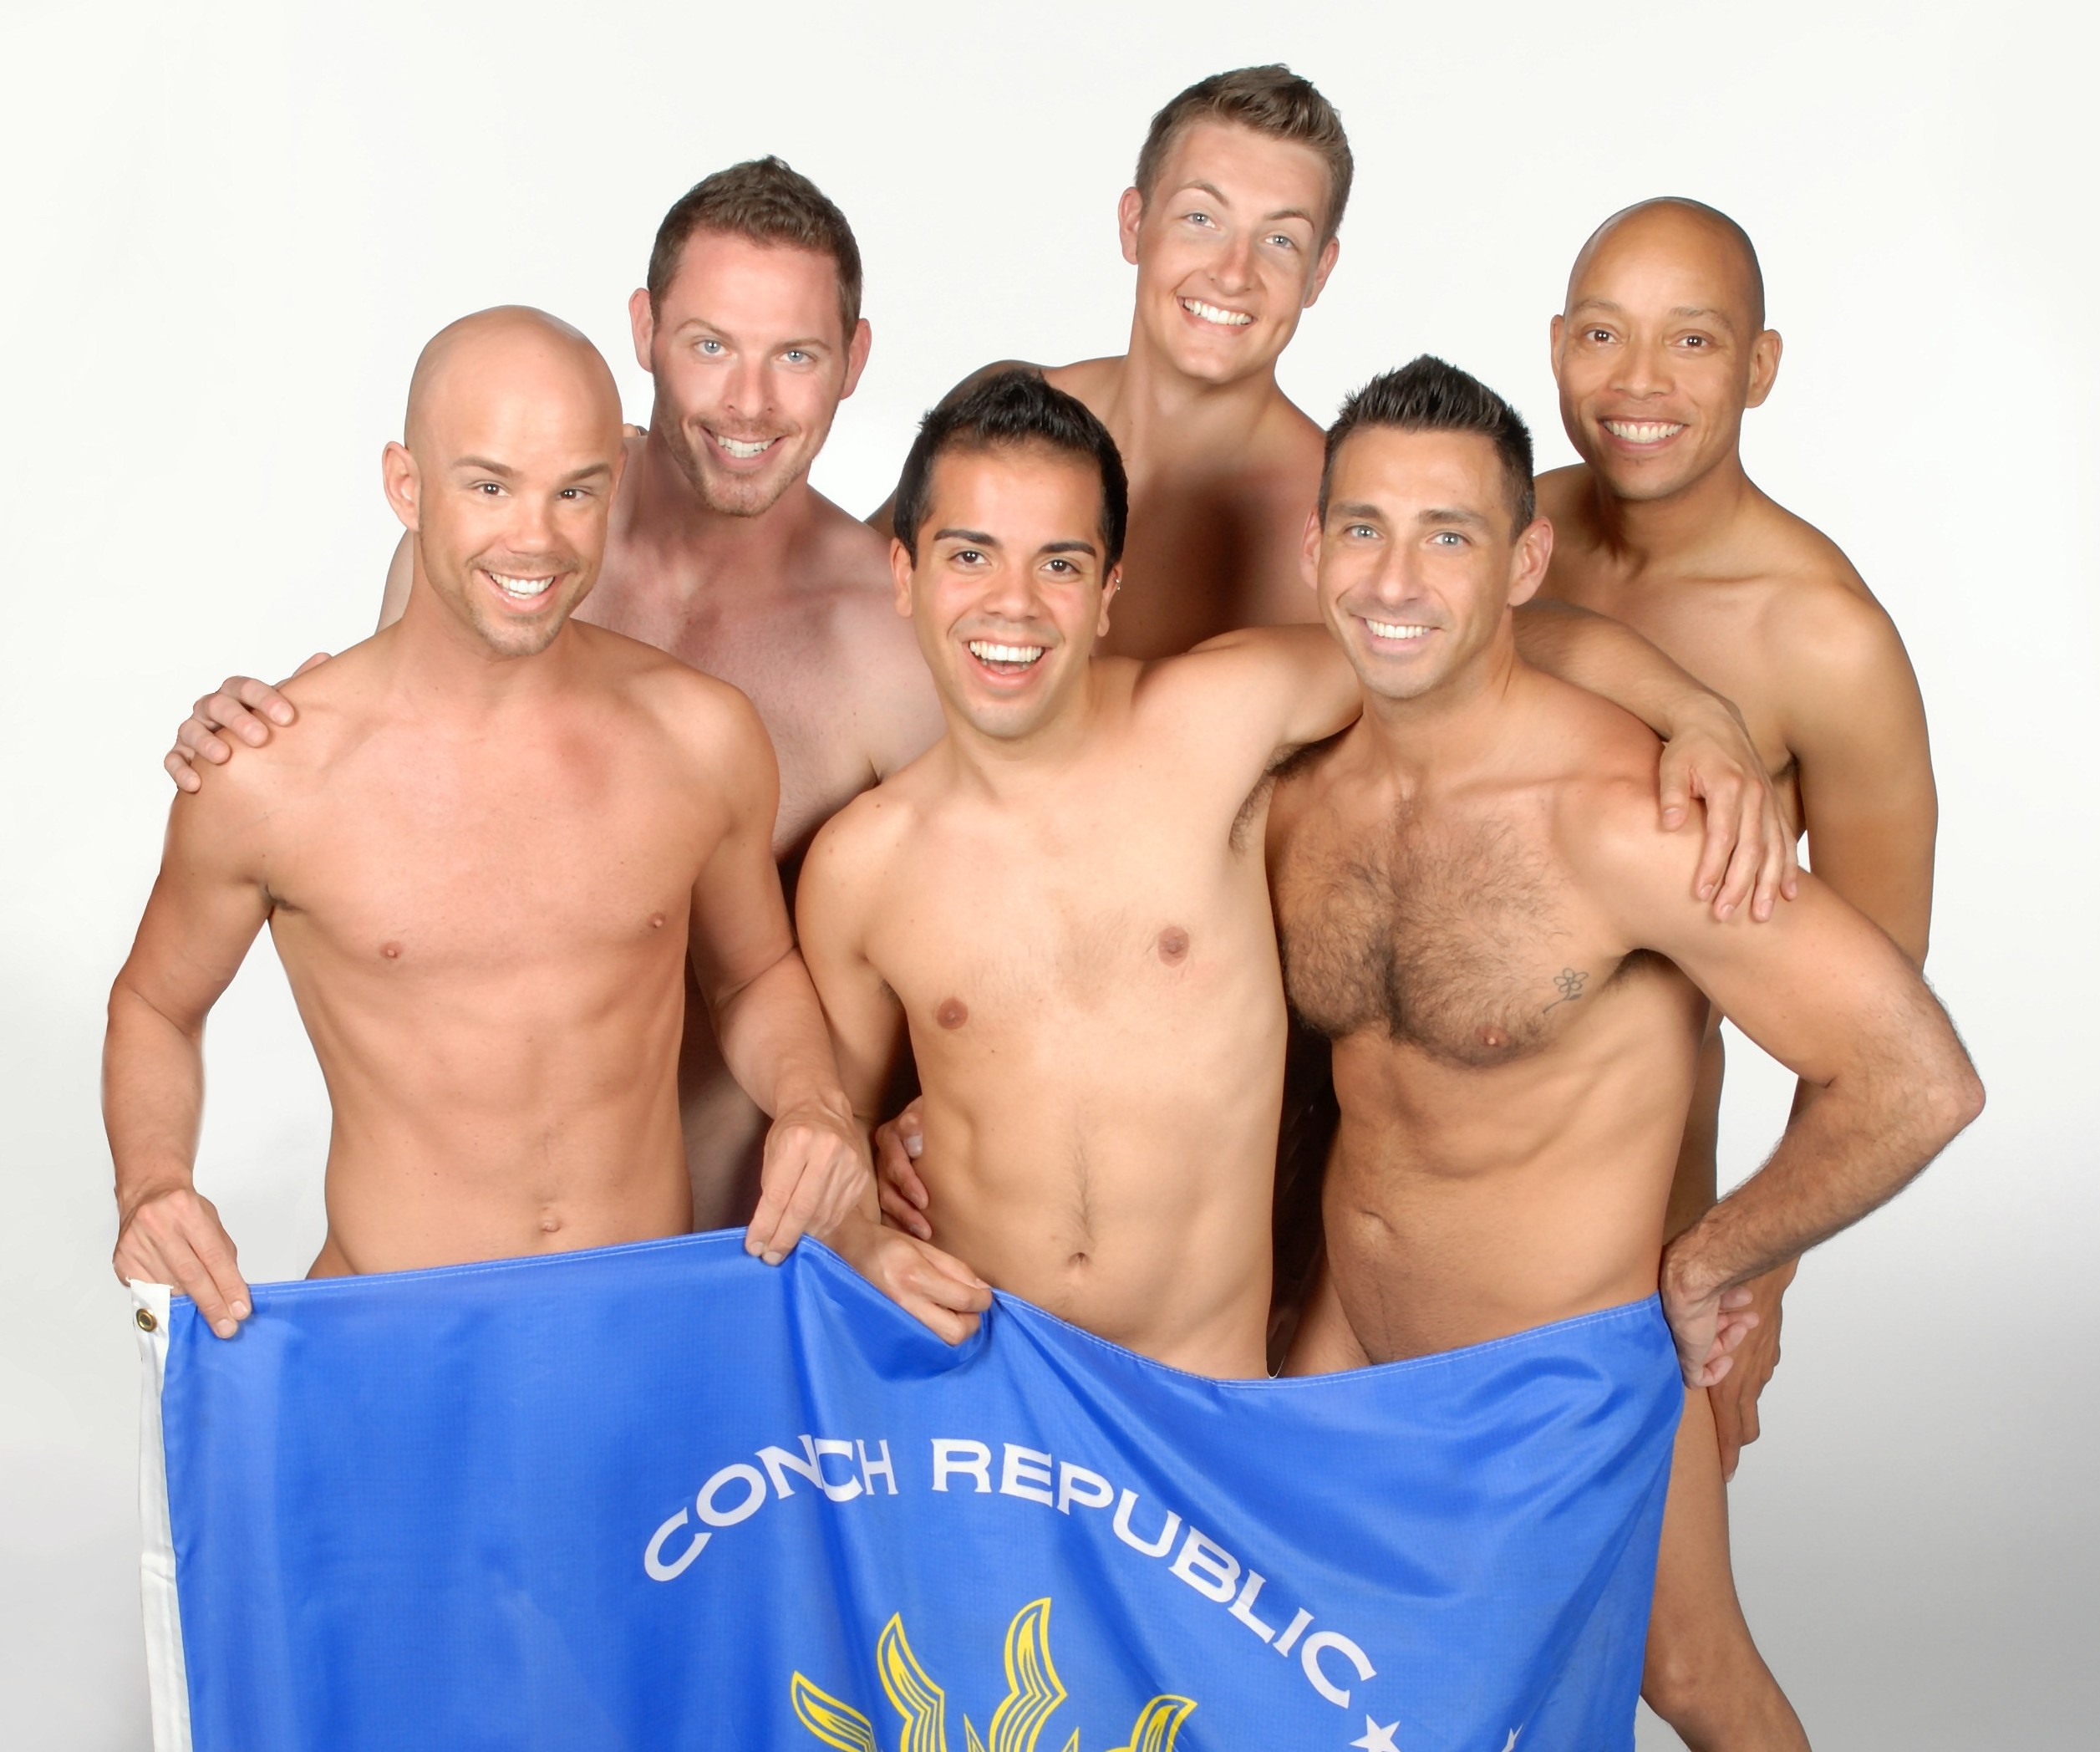 NAKED BOYS SINGING! at the Kings Head Theatre - Lambco